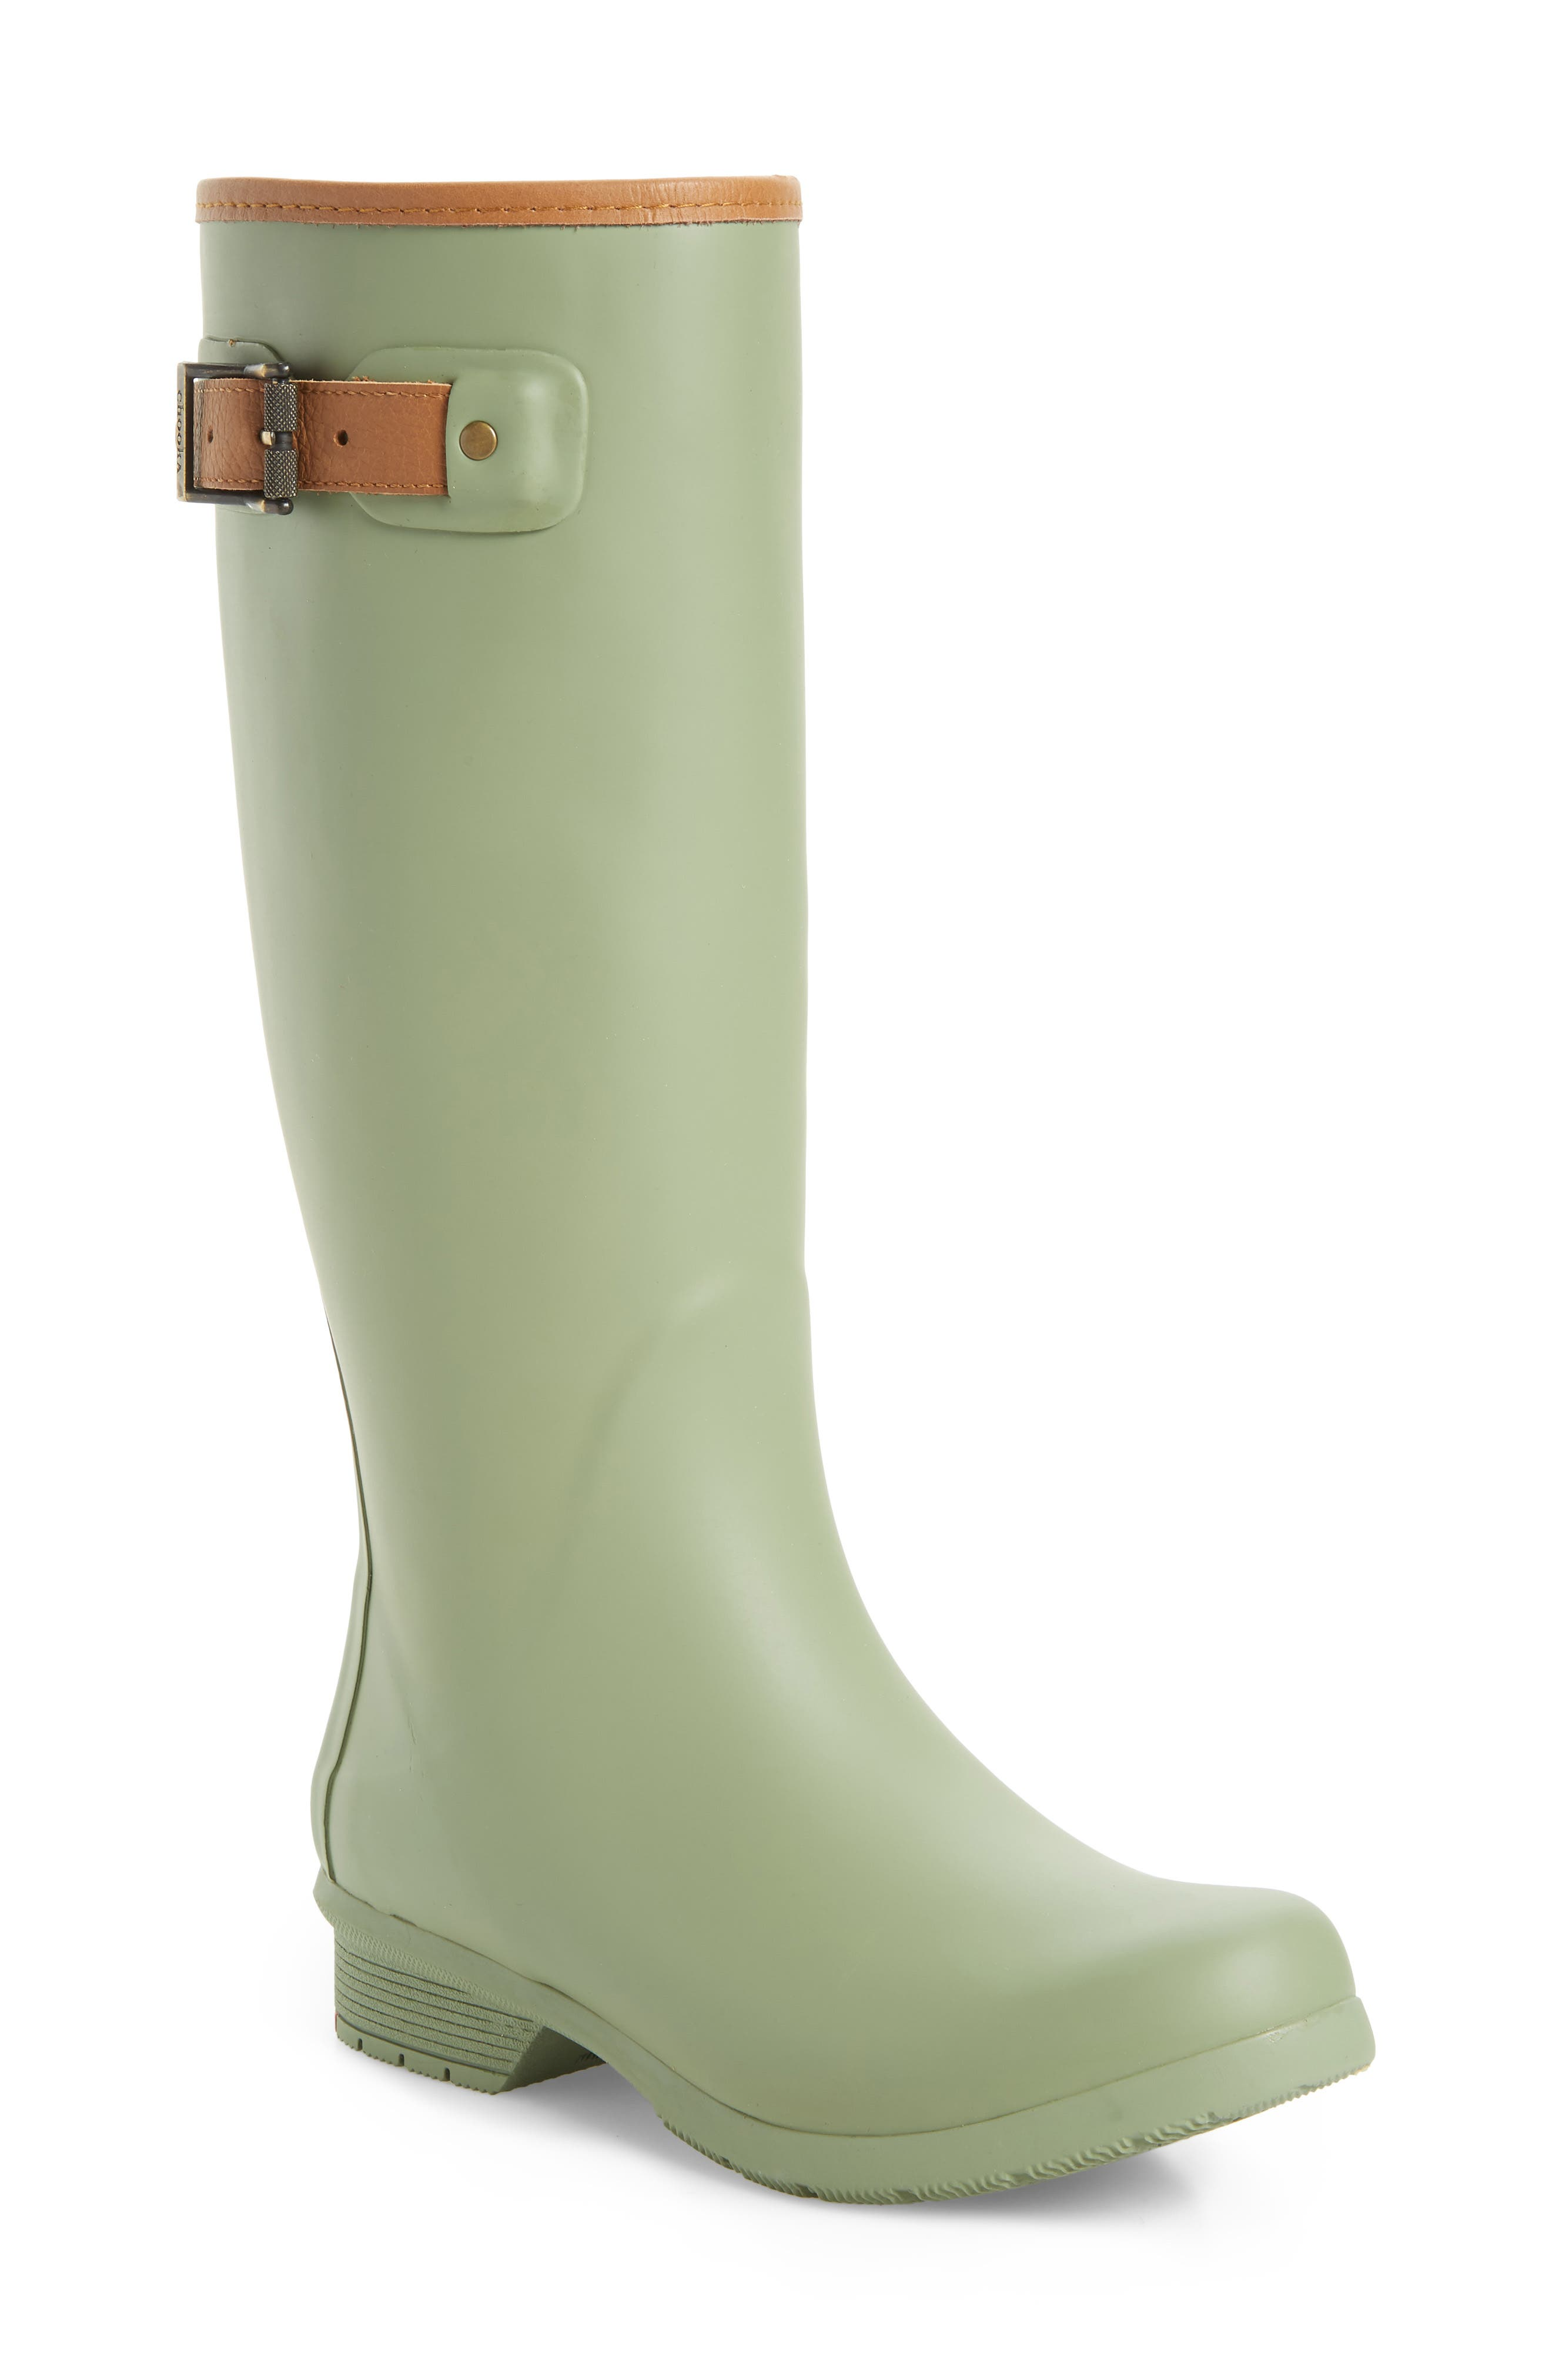 City Tall Rain Boot,                         Main,                         color, 303